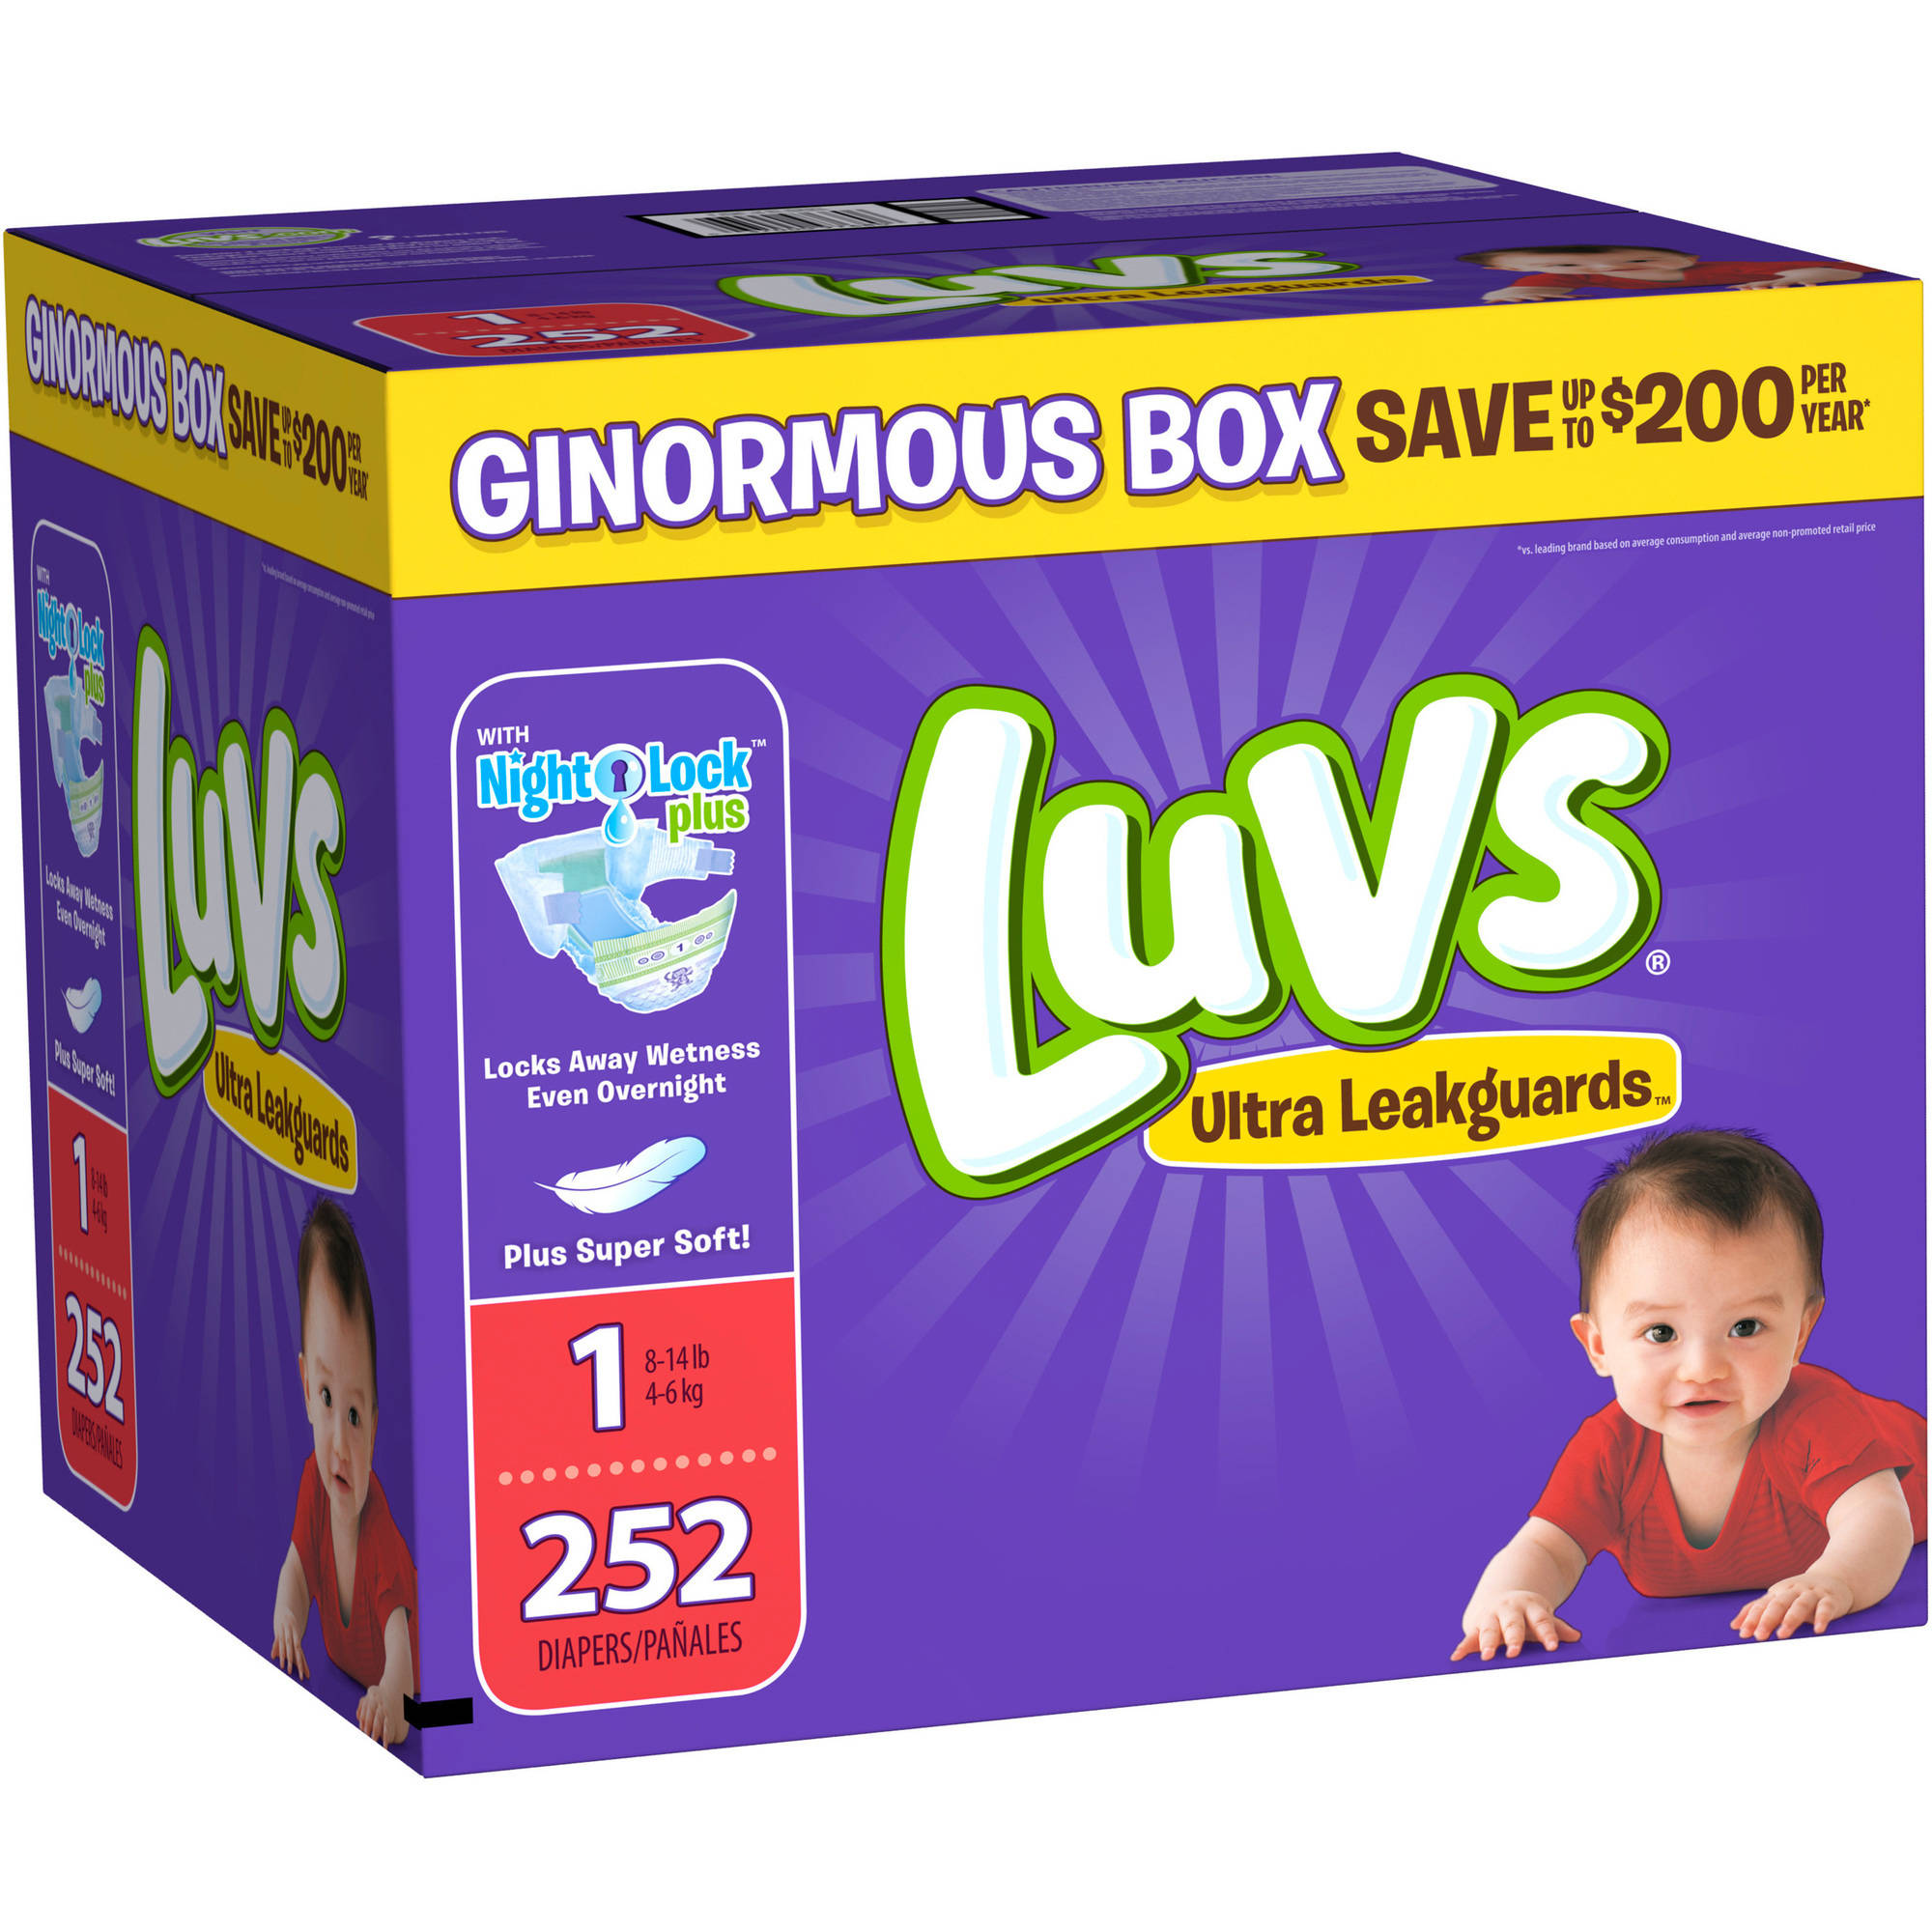 Luvs Ultra Leakguards Diapers, Size 1, 252 Diapers